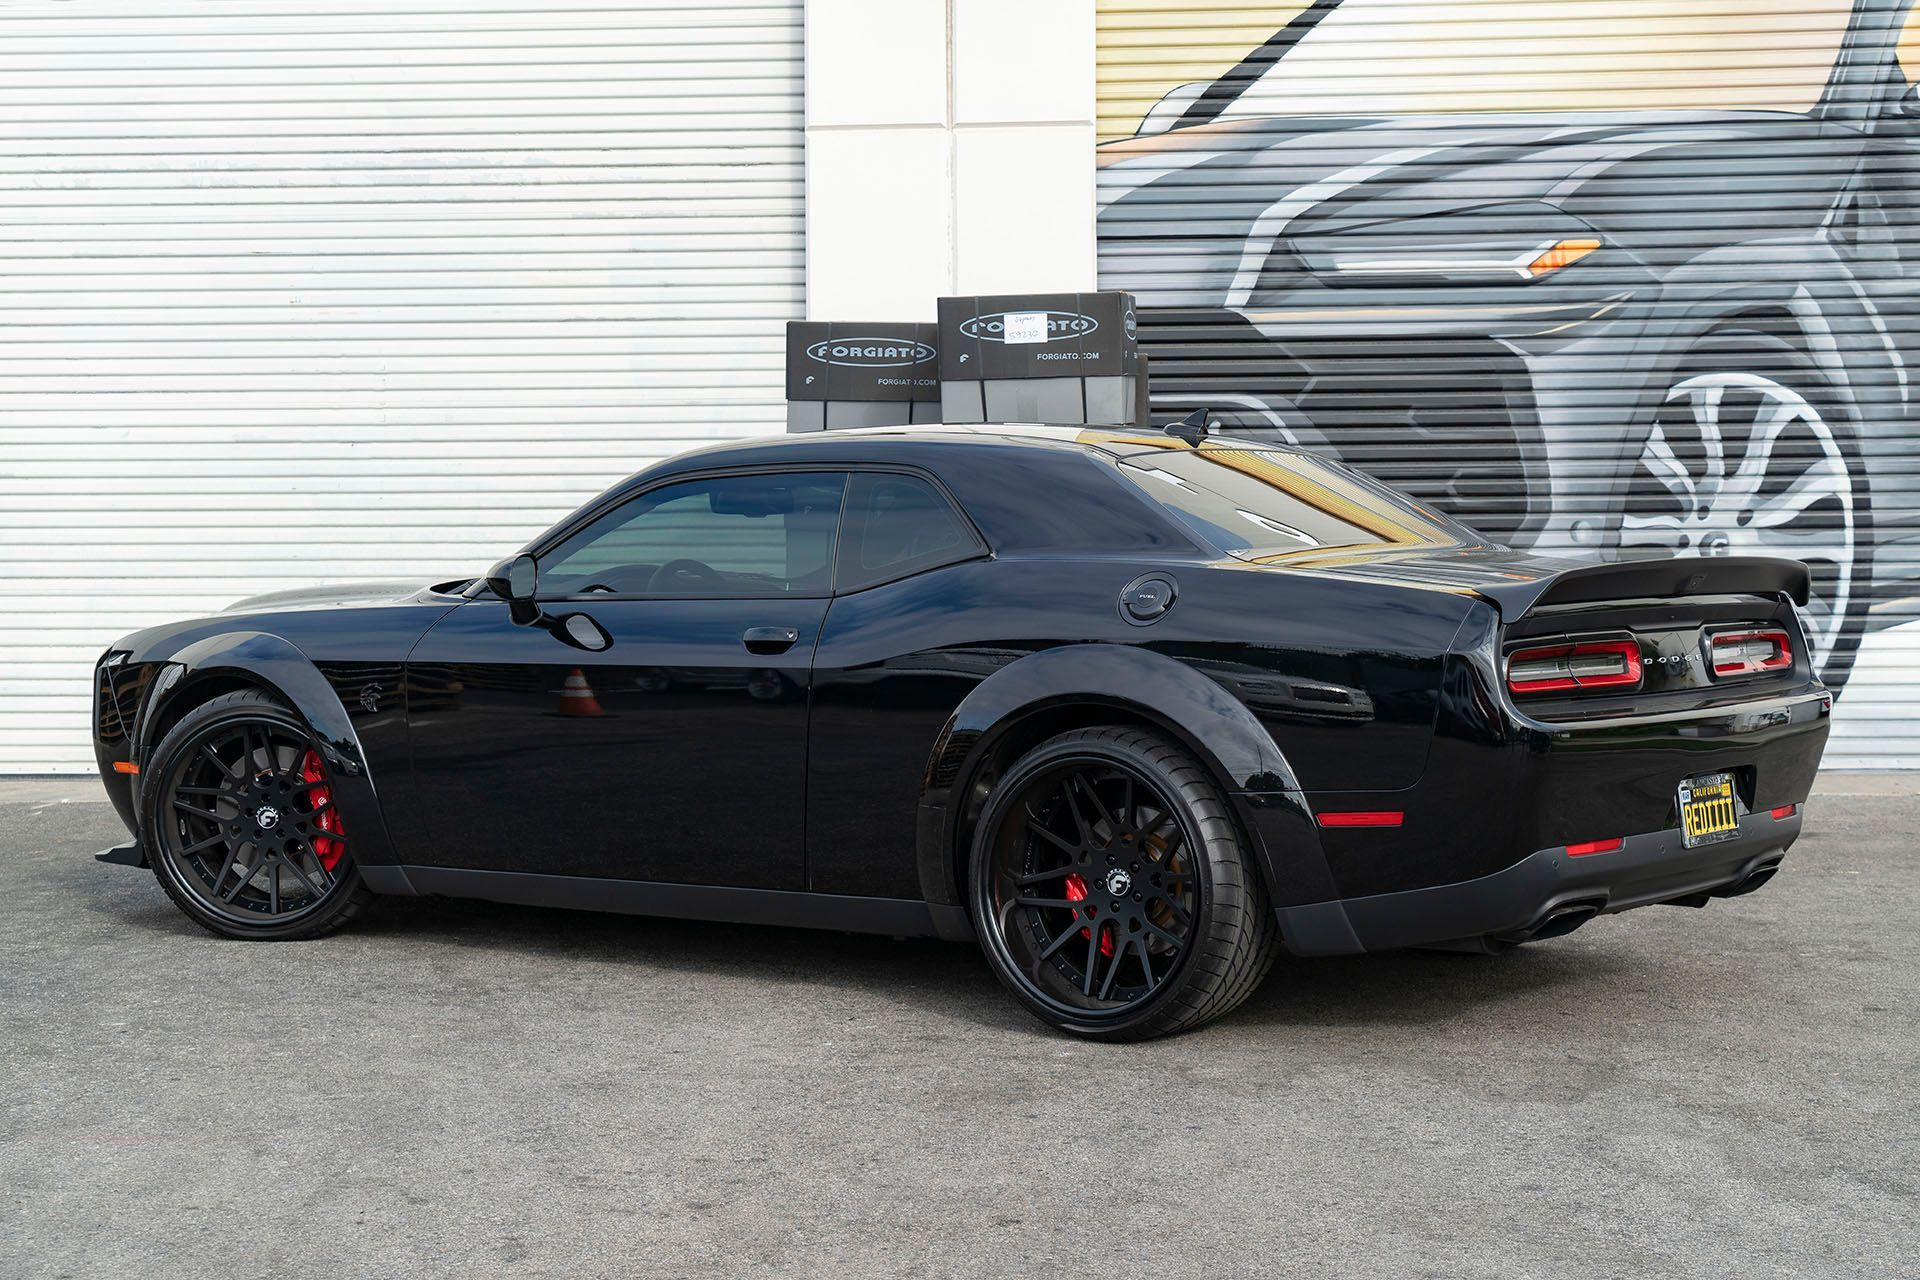 Dodge Challenger Srt Hellcat Redeye Black With 22inch Forgiato Maglia Aftermarket Wheels In 2020 Dodge Challenger Srt Hellcat Challenger Srt Hellcat Dodge Challenger